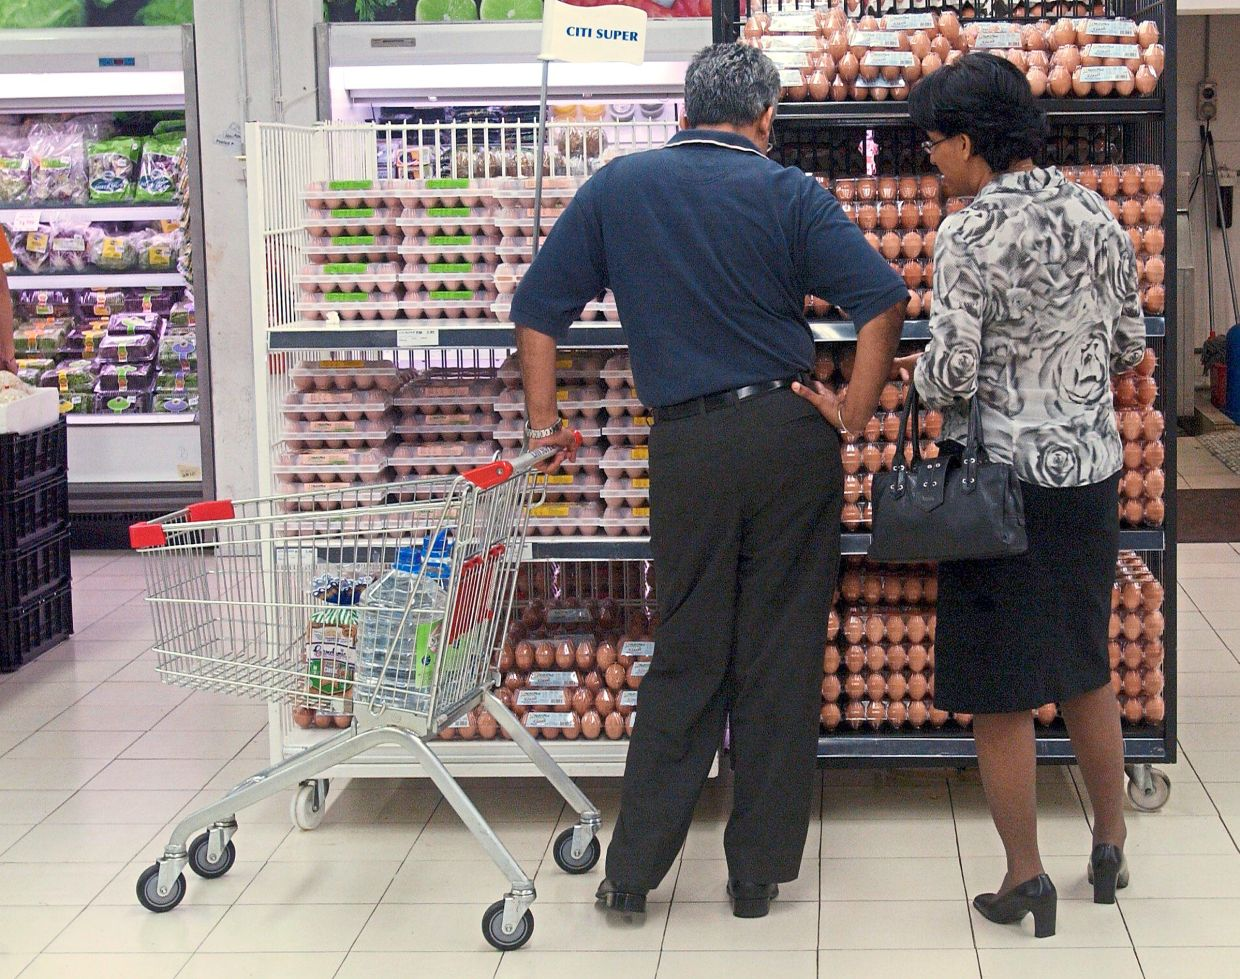 In the supermarket, you will see that some eggs are fortified with micronutrients like selenium and fatty acids like omega-3. — Filepic